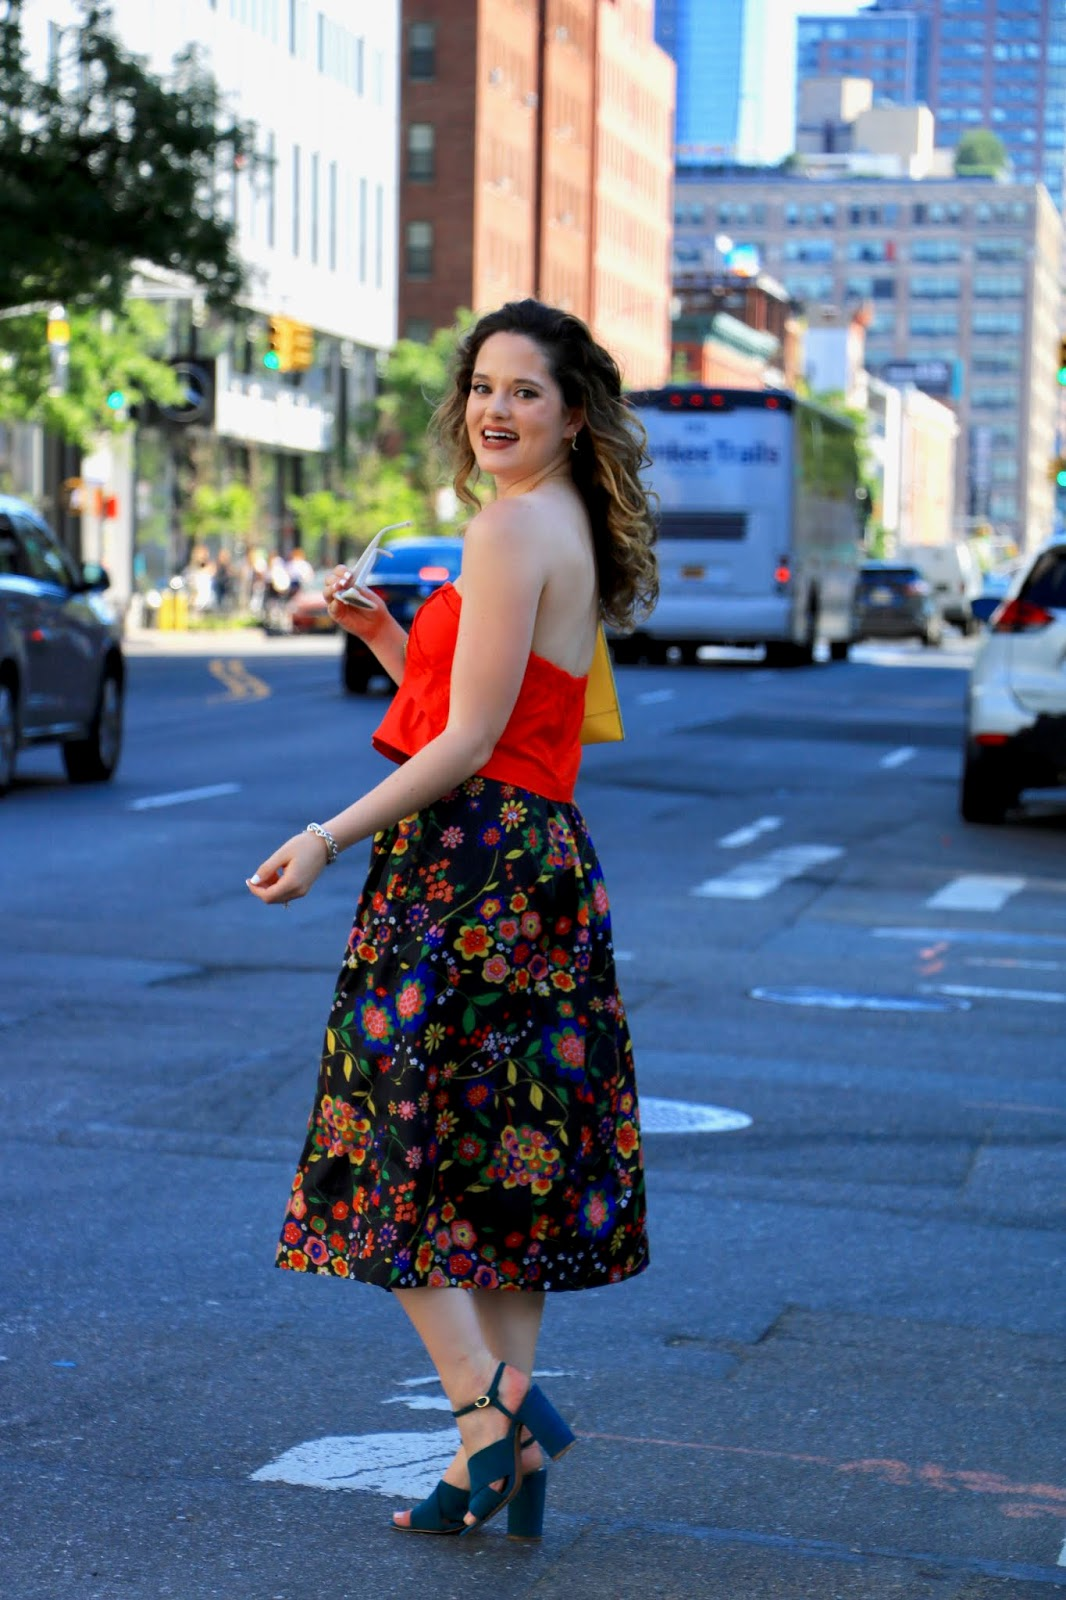 Nyc fashion blogger Kathleen Harper wearing a crop top outfit with a floral midi skirt.